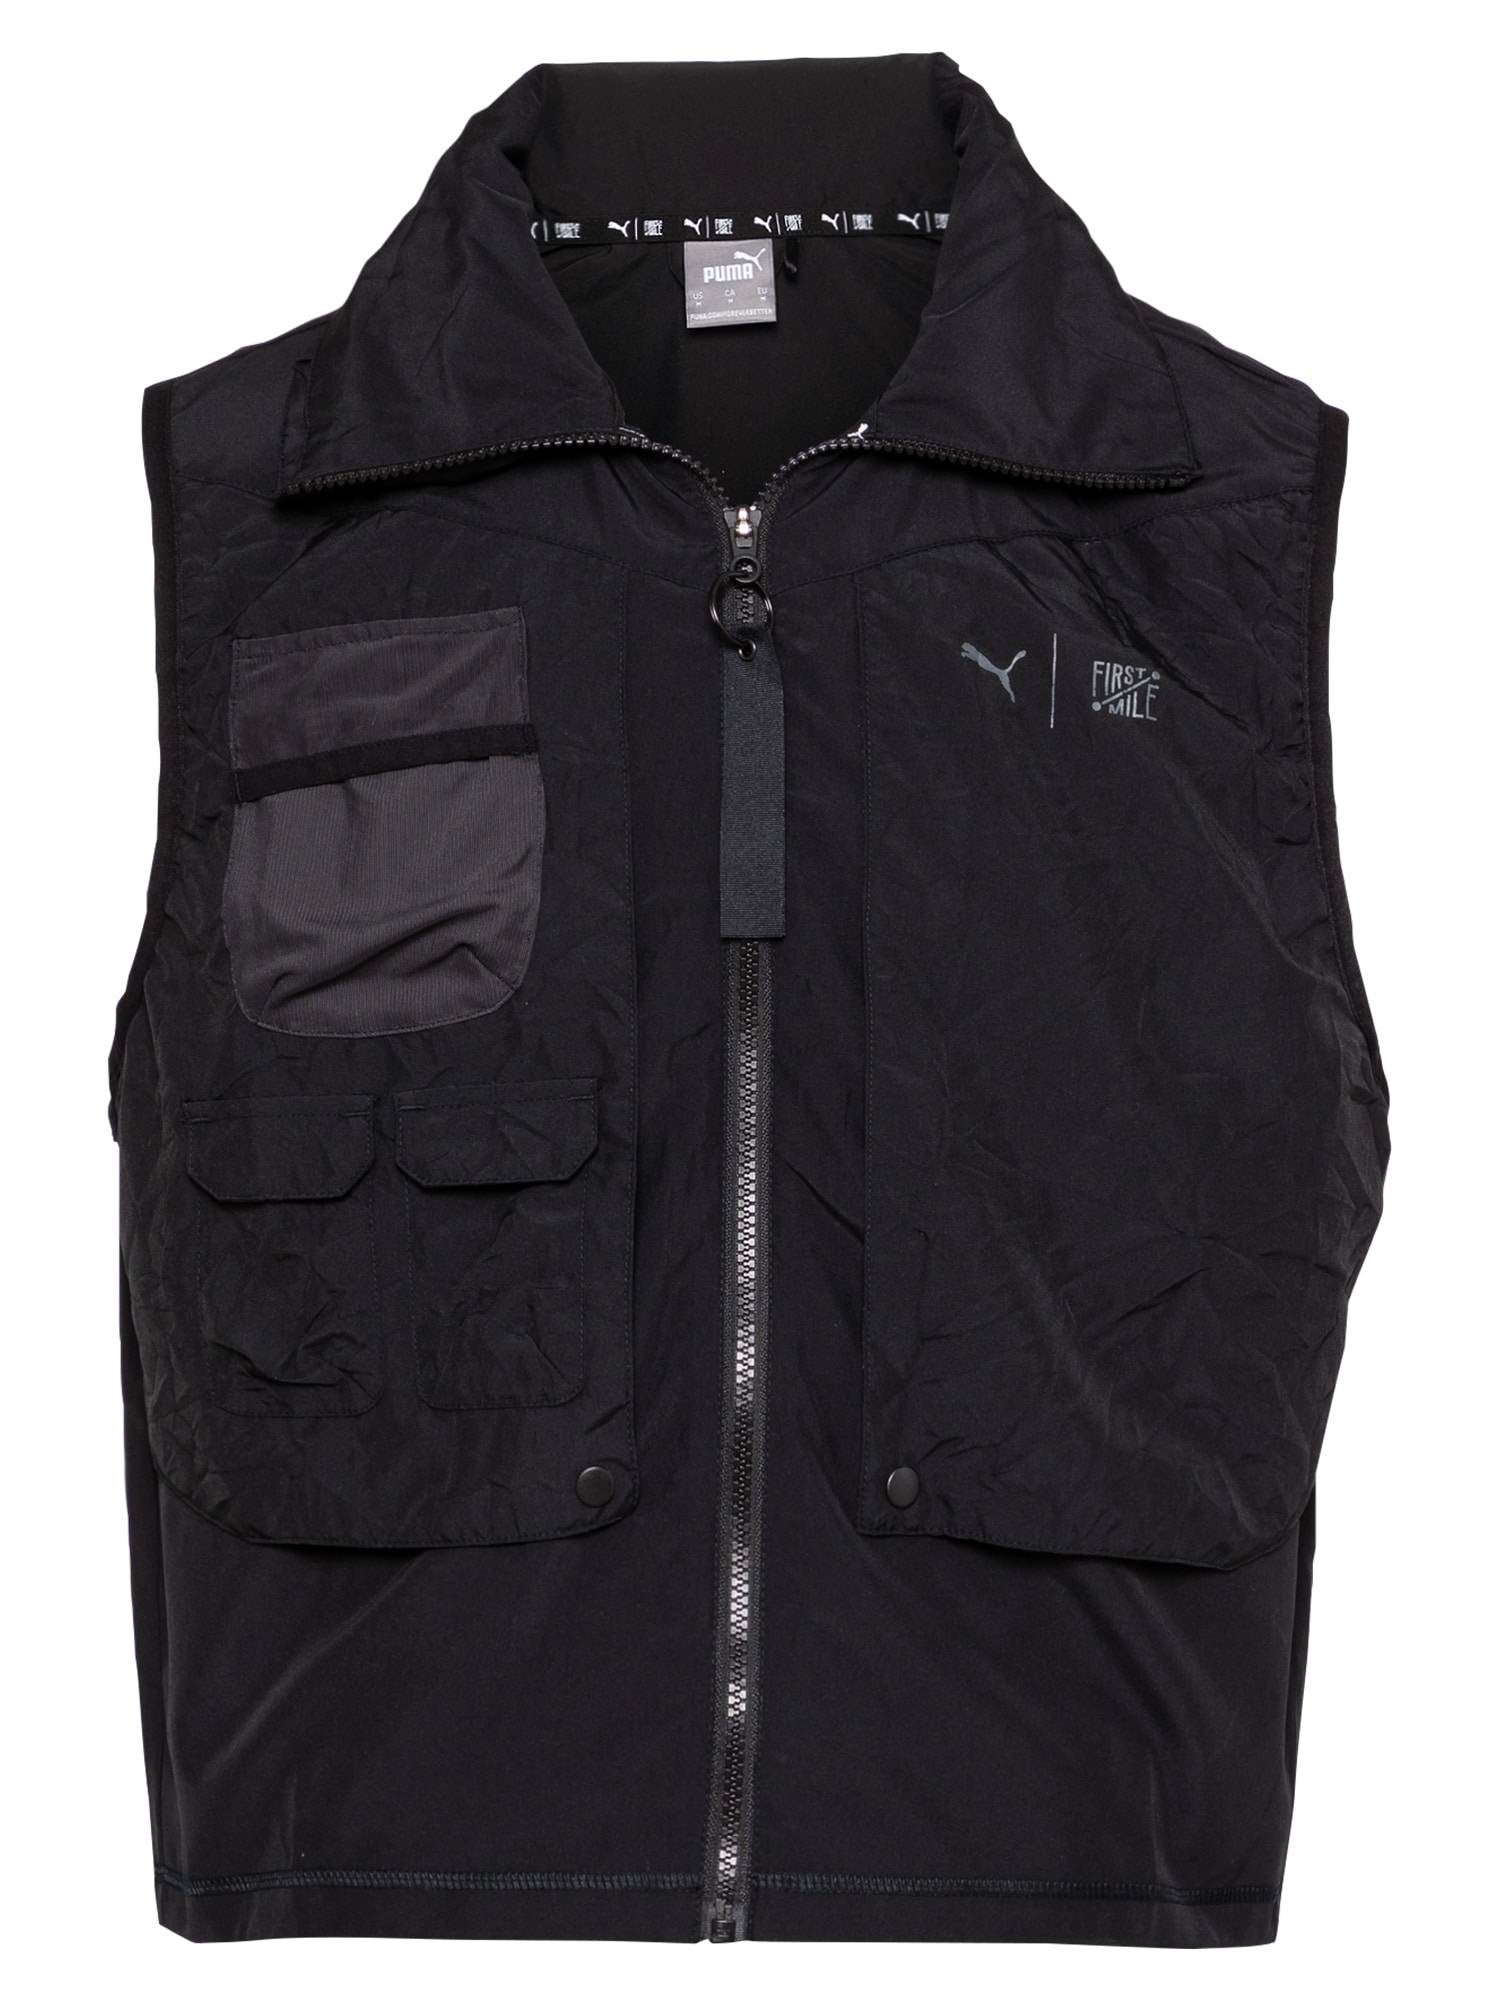 PUMA Gilet de sport 'TRAIN FIRST MILE UTILITY VEST'  - Noir - Taille: XL - male